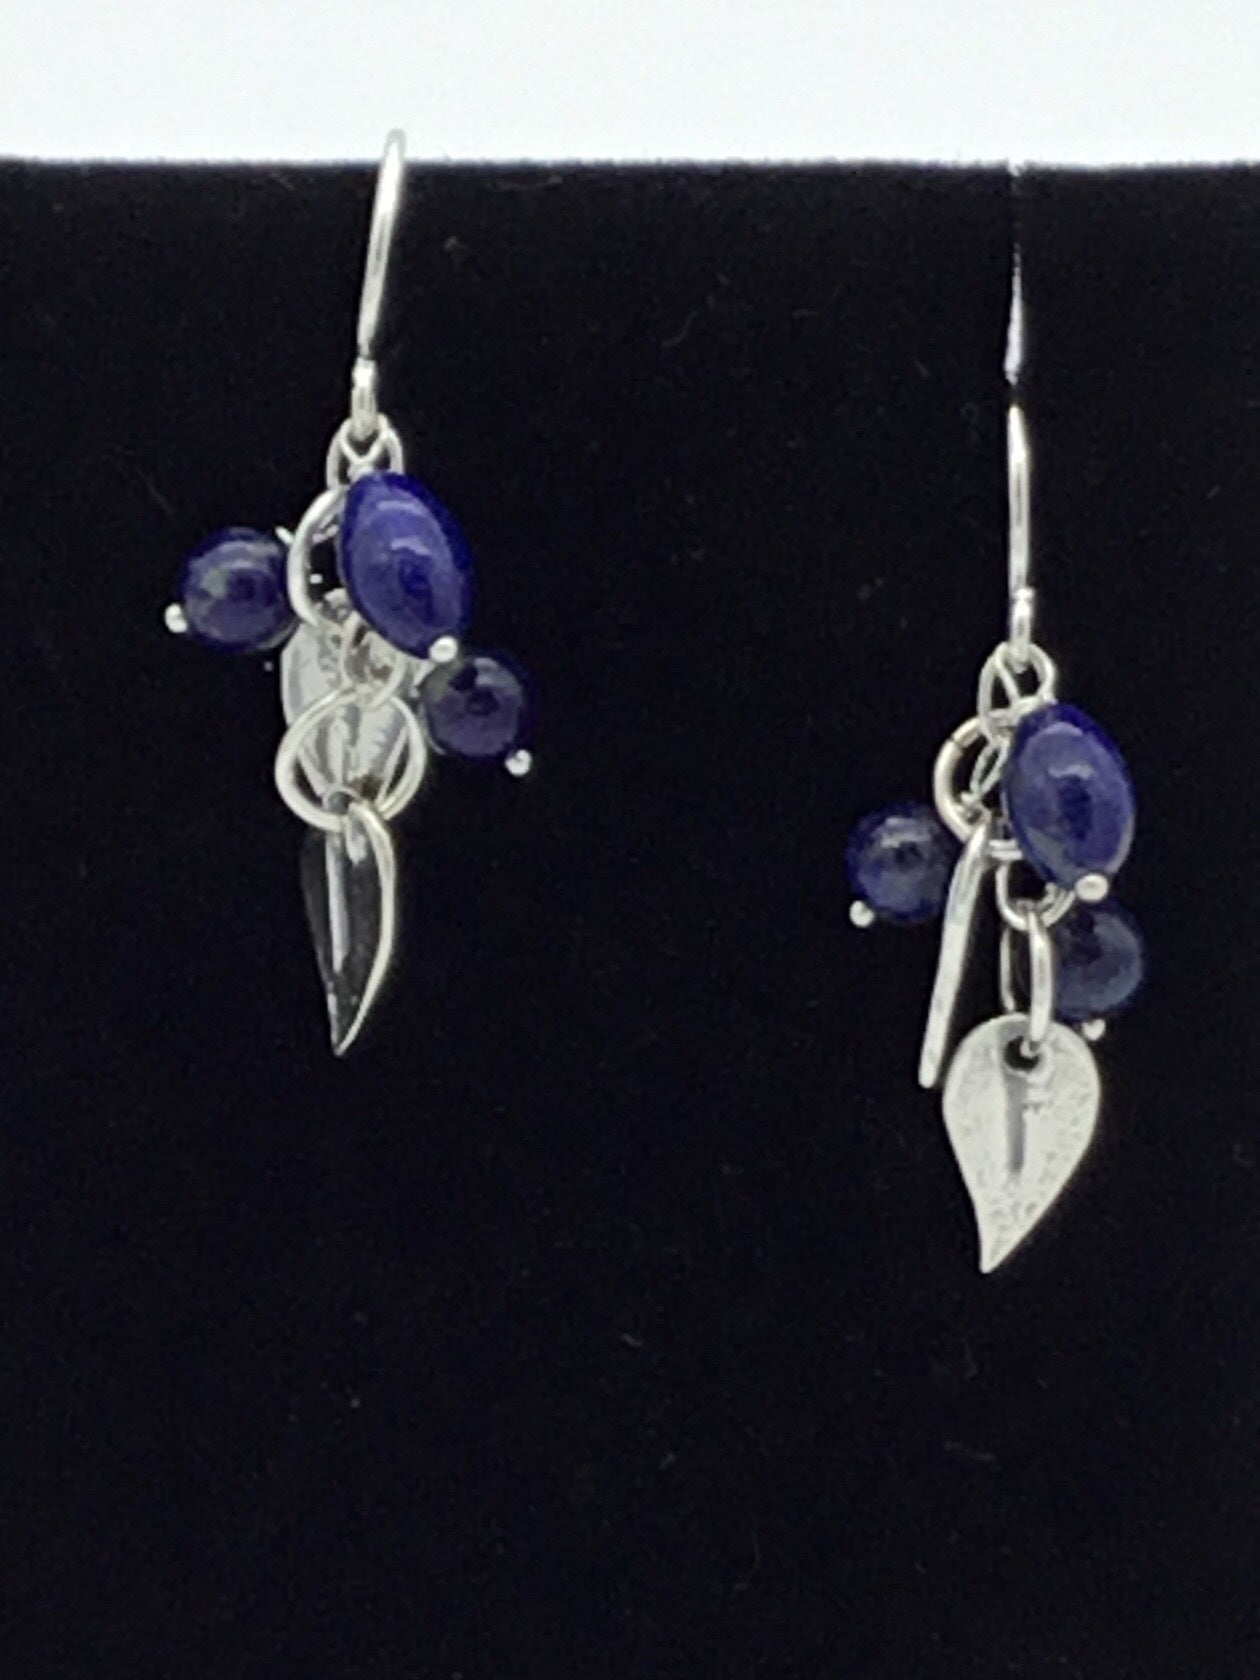 Blueberry earring by Berthiel Evens